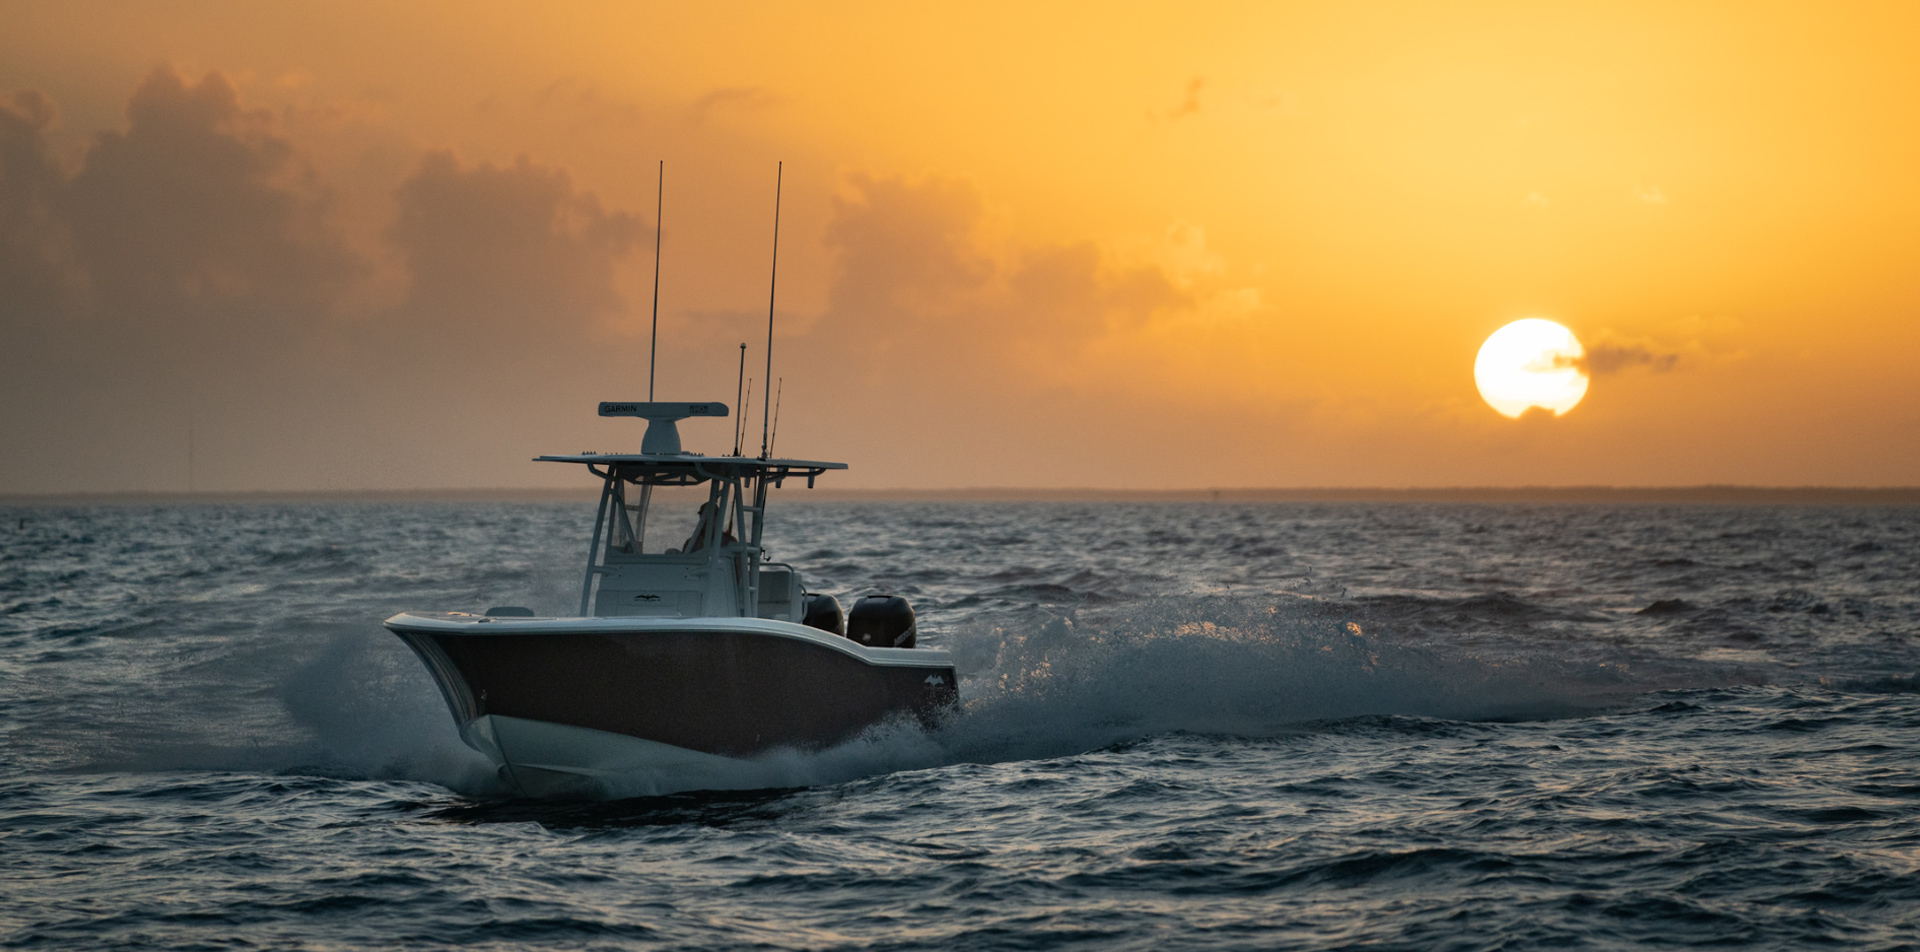 33 ft Open Fisherman cruising waters while the sun is setting.